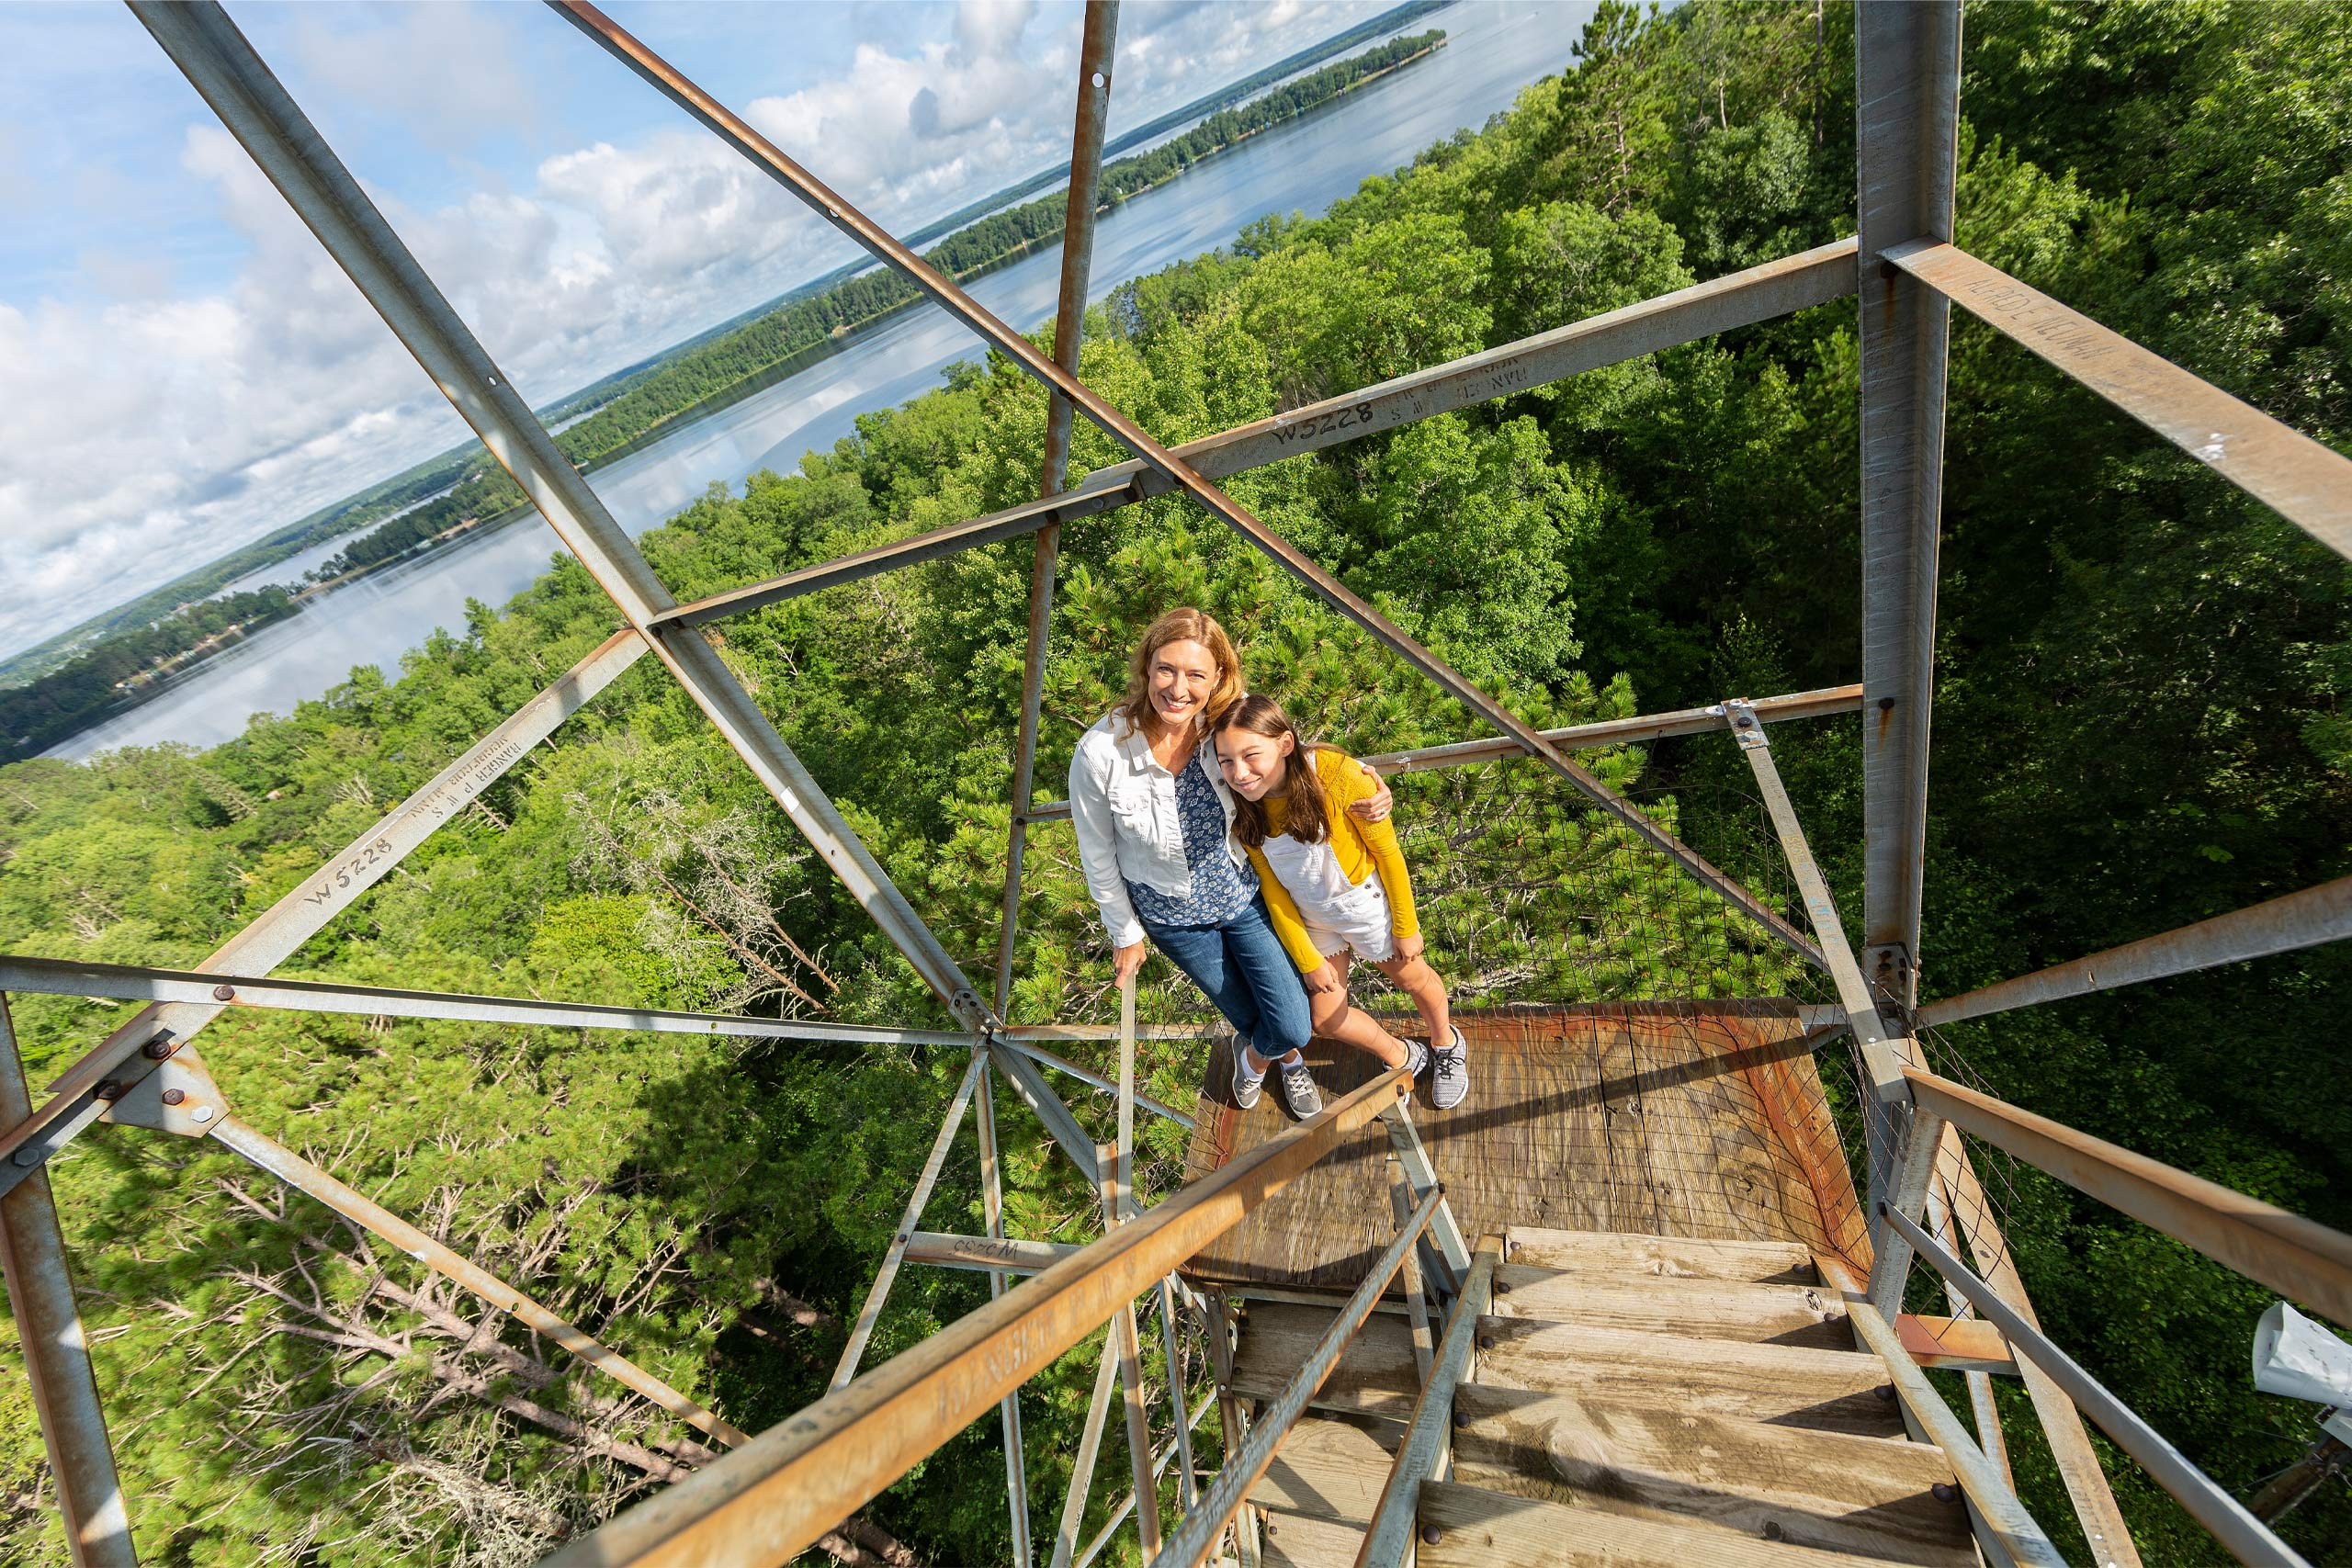 McGregor_Climbing_Tower_Mom_Daughter_4514_WebSmaller